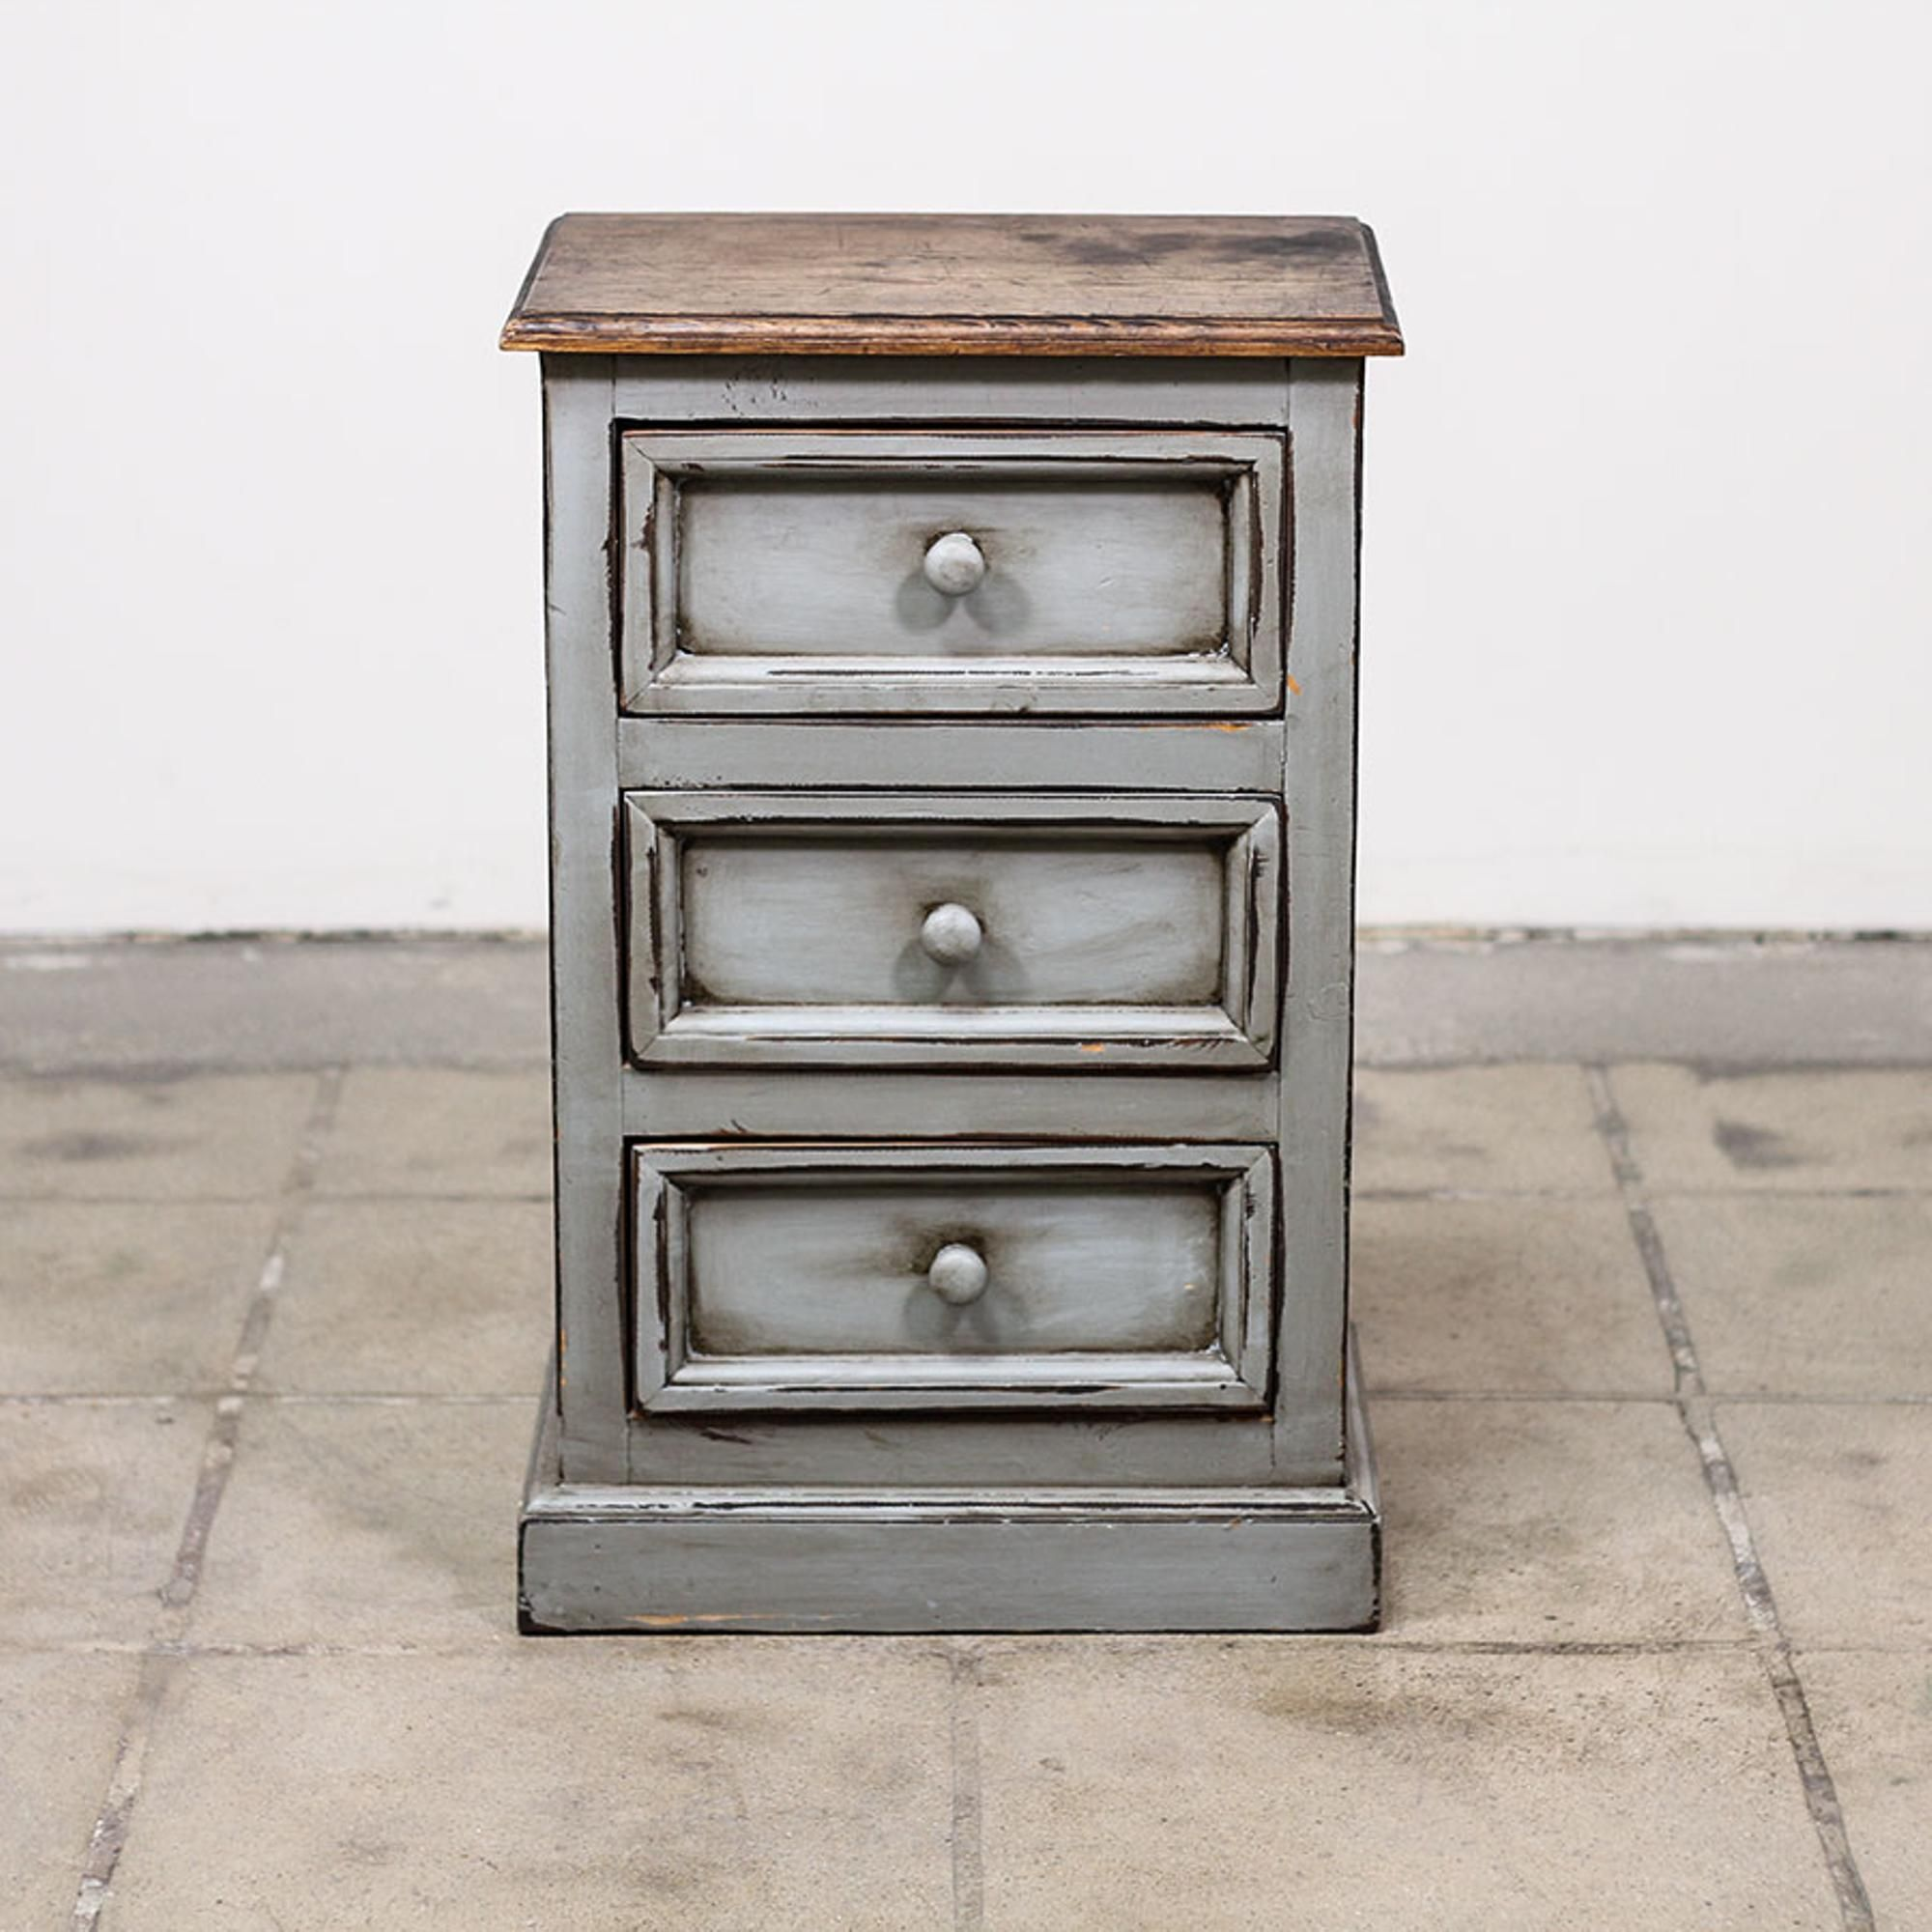 This Shabby Chic Nightstand Is Featured In A Solid Wood With A Distressed Light Blue Gray Paint Fin Shabby Chic Dresser Shabby Chic Nightstand Shabby Chic Room